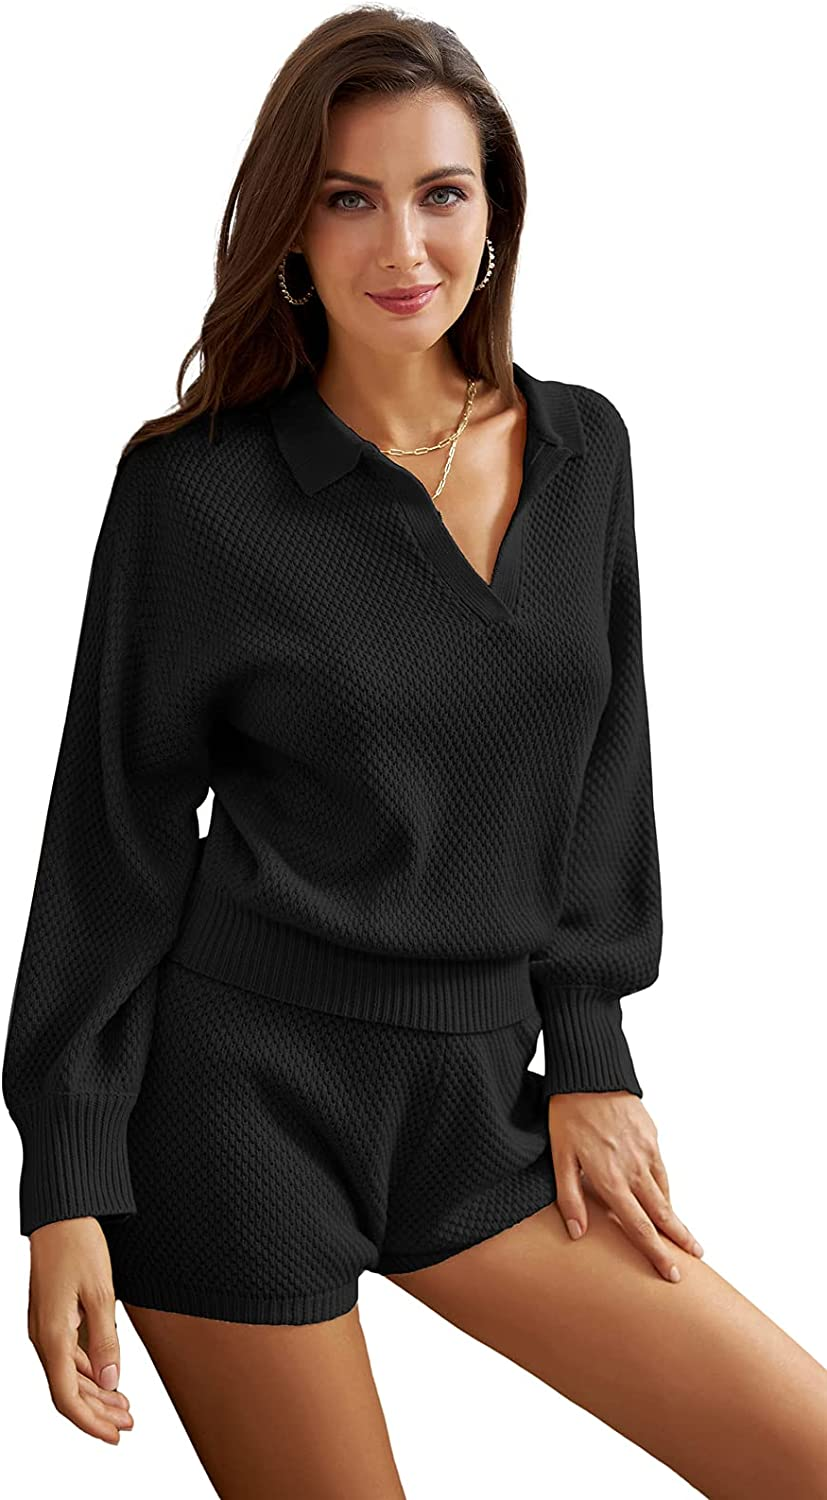 GRACE Ranking TOP19 KARIN Spasm price Women's 2 Piece Outfits Sets Lapel Collar Lo Sweater